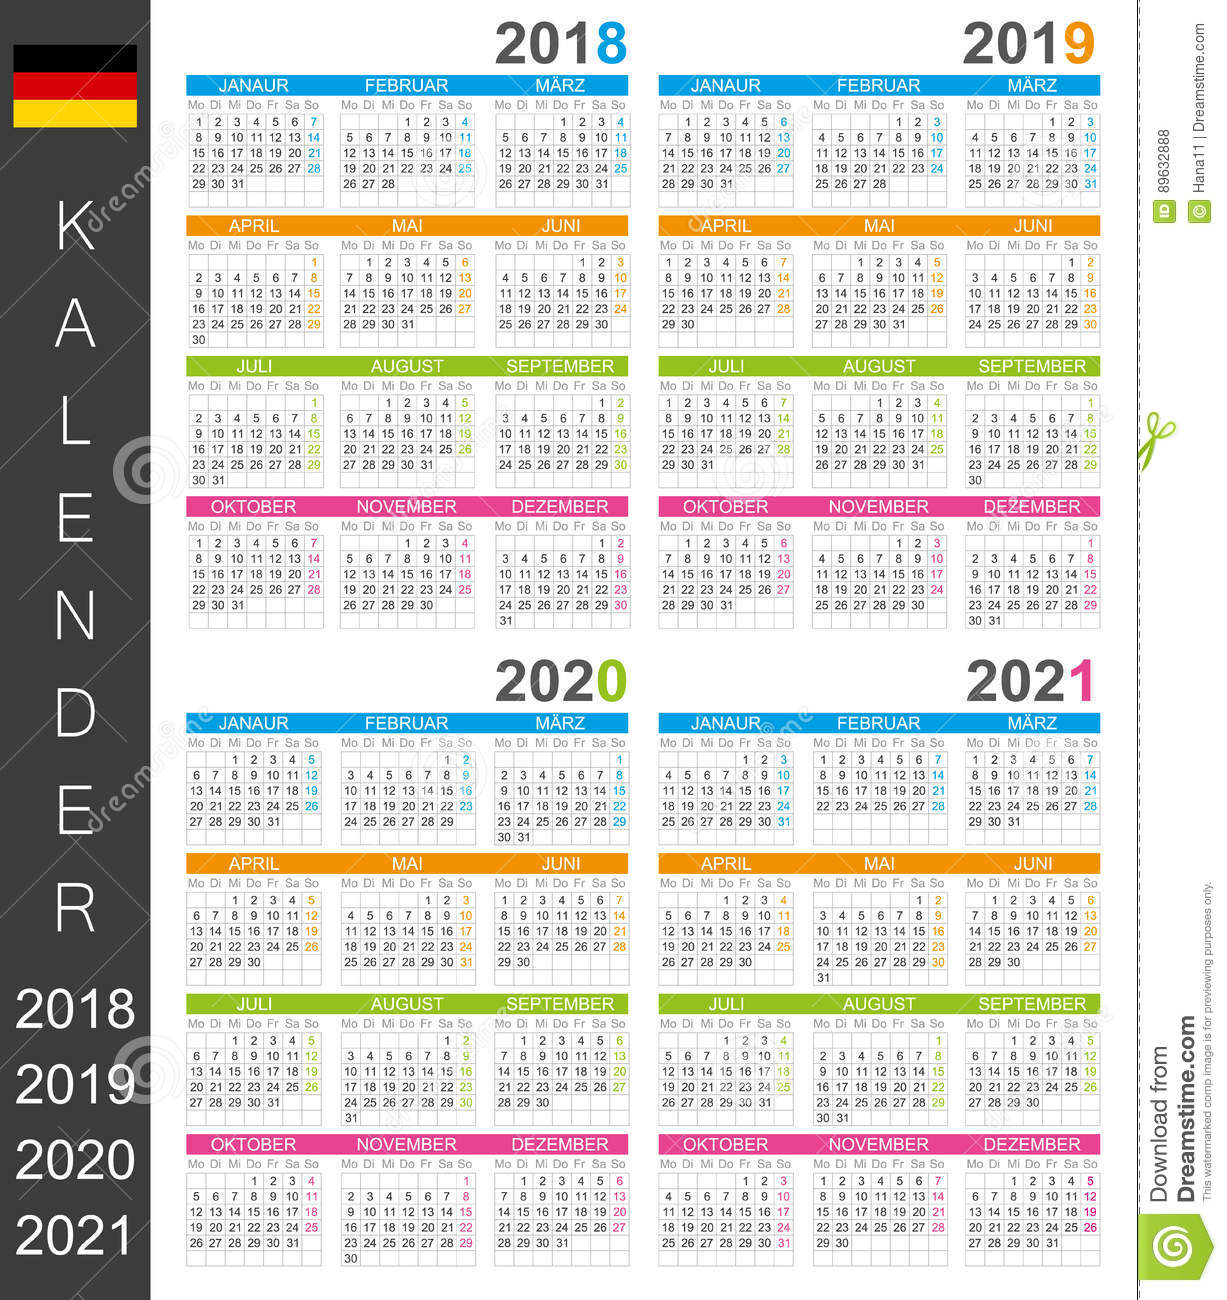 Calendrier 2018_2021 Calendrier 2018 2021 illustration stock. Illustration du